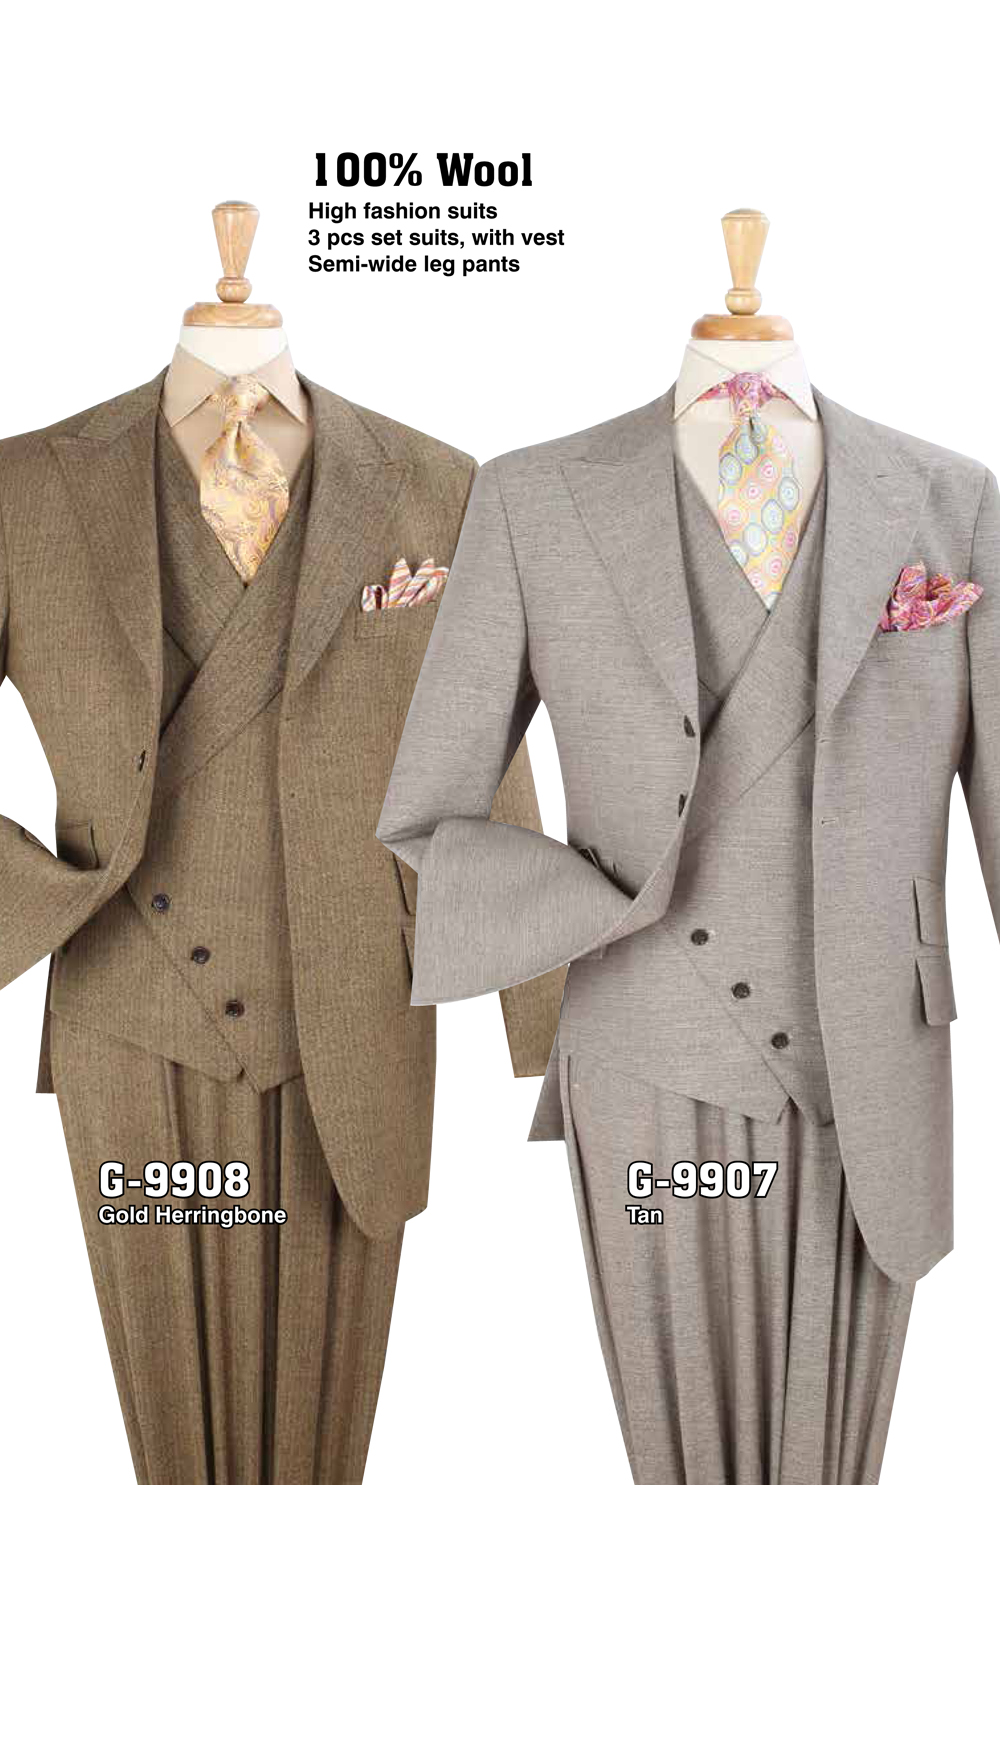 High Fashion Men Suits G-9908